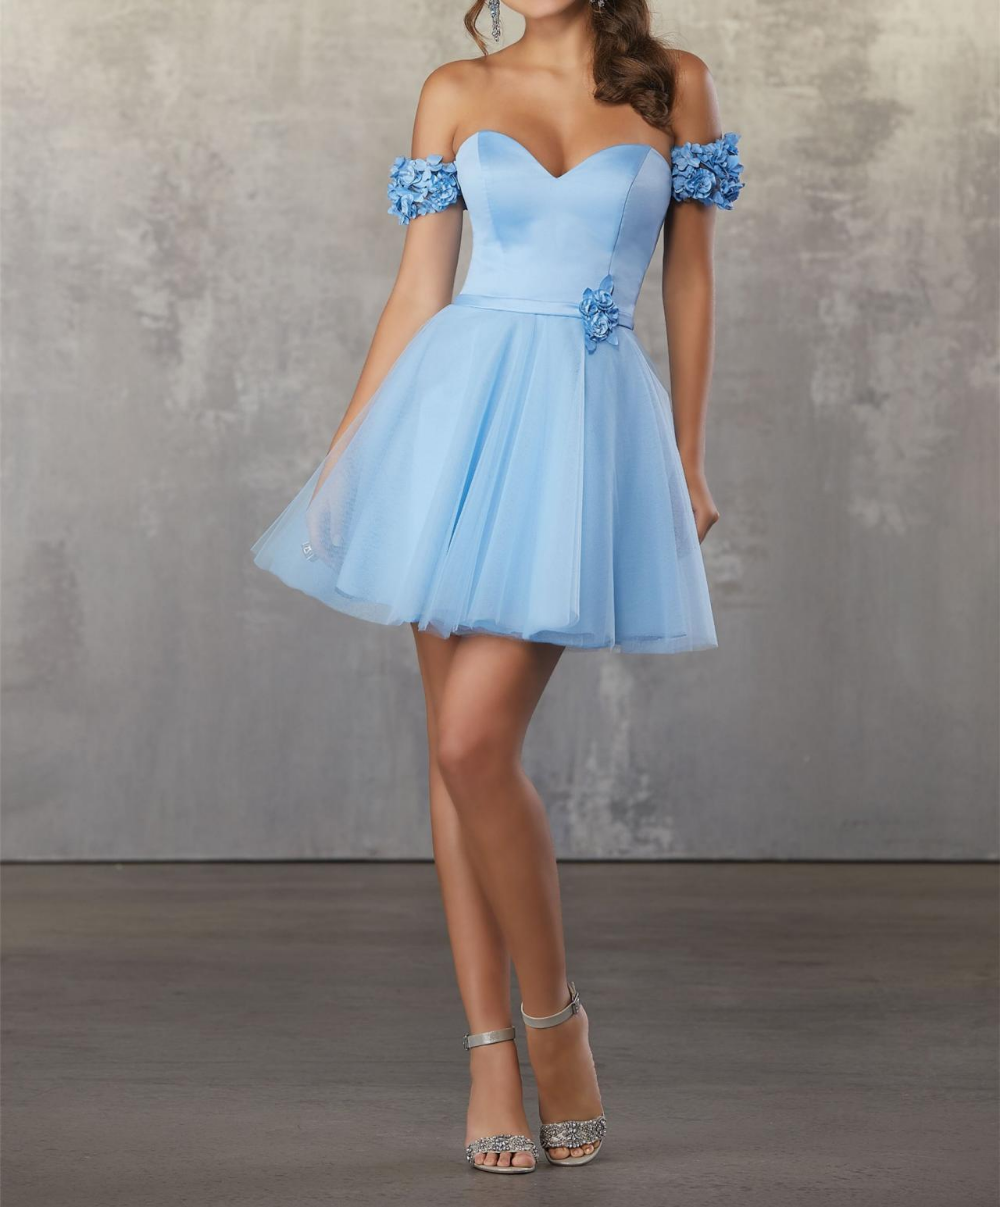 Light Blue Tulle Appliques Off The Shoulder Homecoming Dresses A Line Short Length Sweetheart Ho Pretty Homecoming Dresses Homecoming Dresses Tulle Party Dress [ 1207 x 1000 Pixel ]